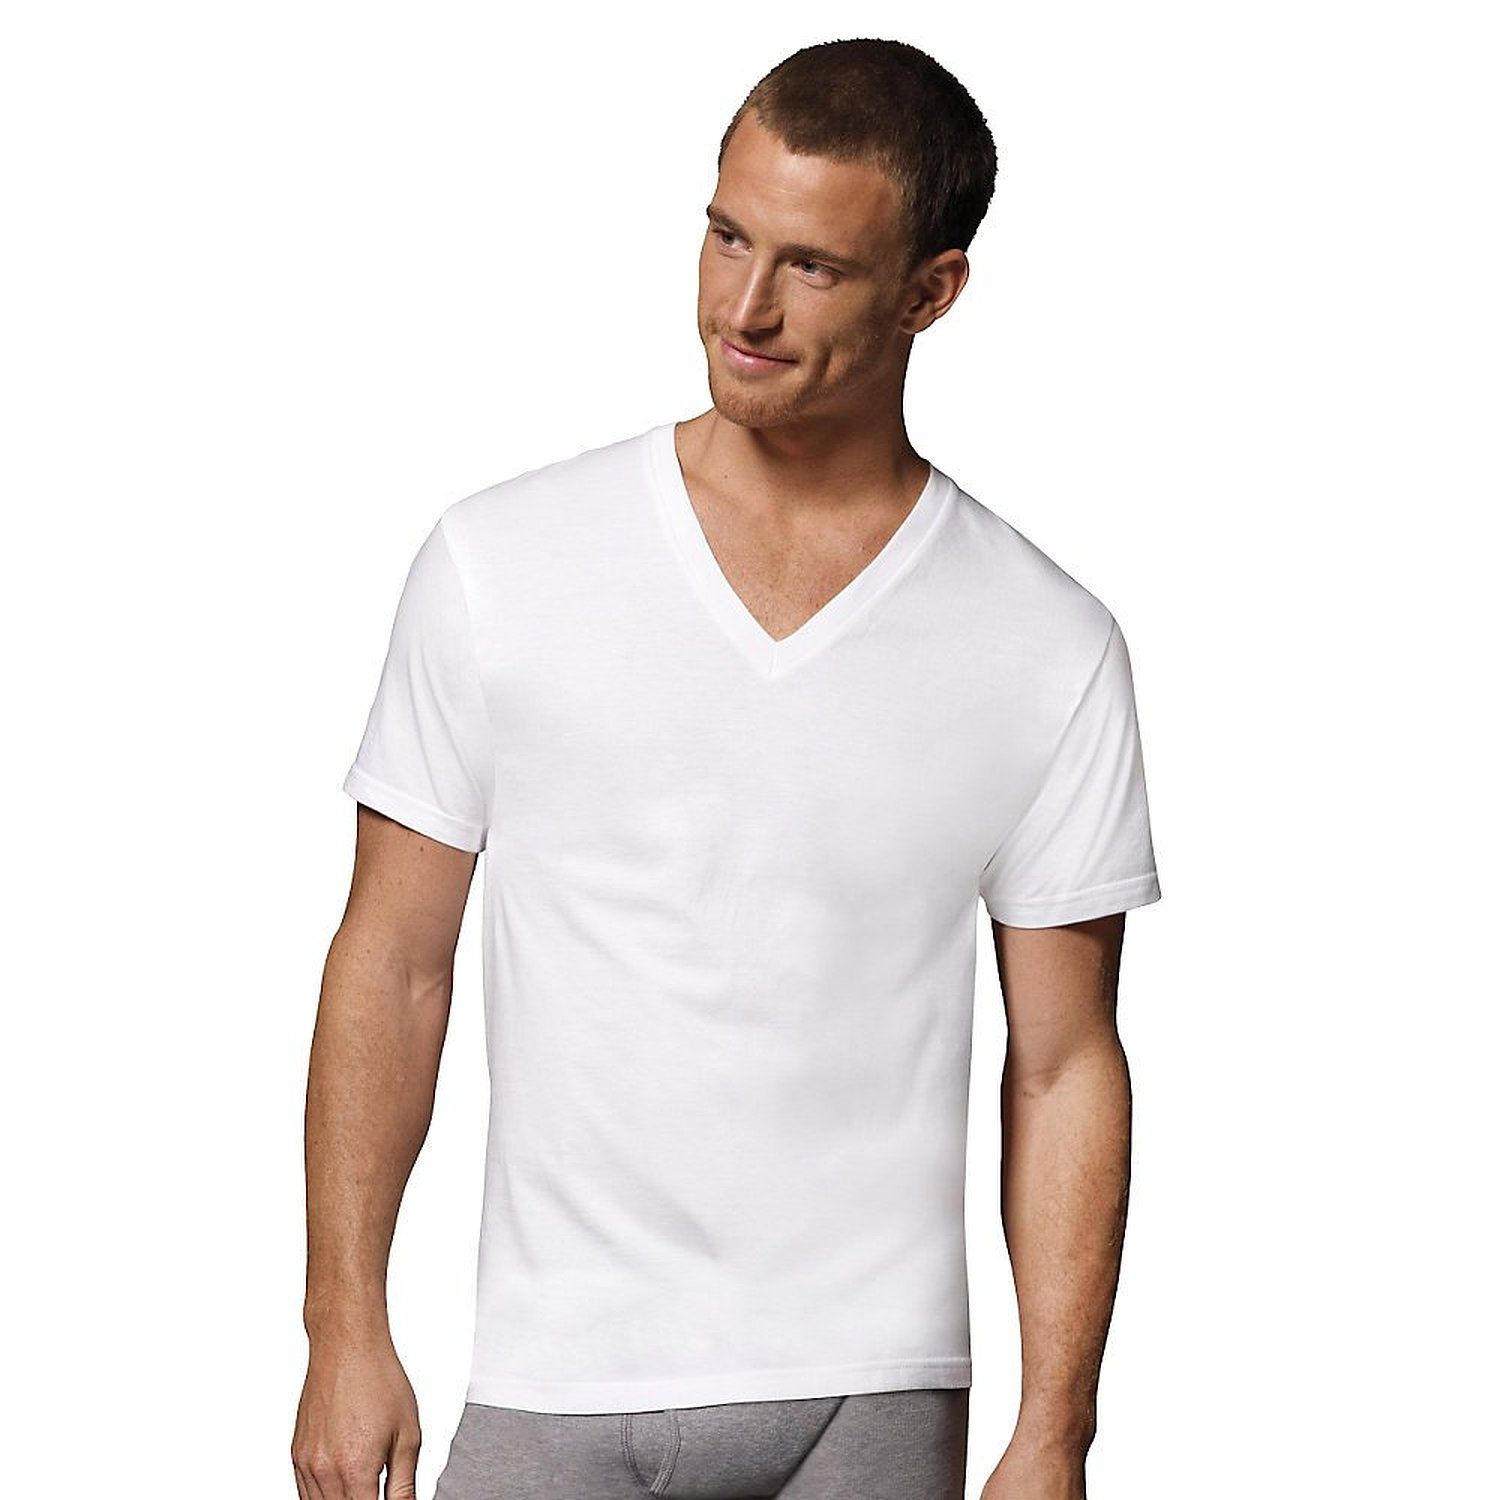 Hanes black t shirts xxl - Amazon Com Mens Hanes White V Neck T 5 Pack Xxl White